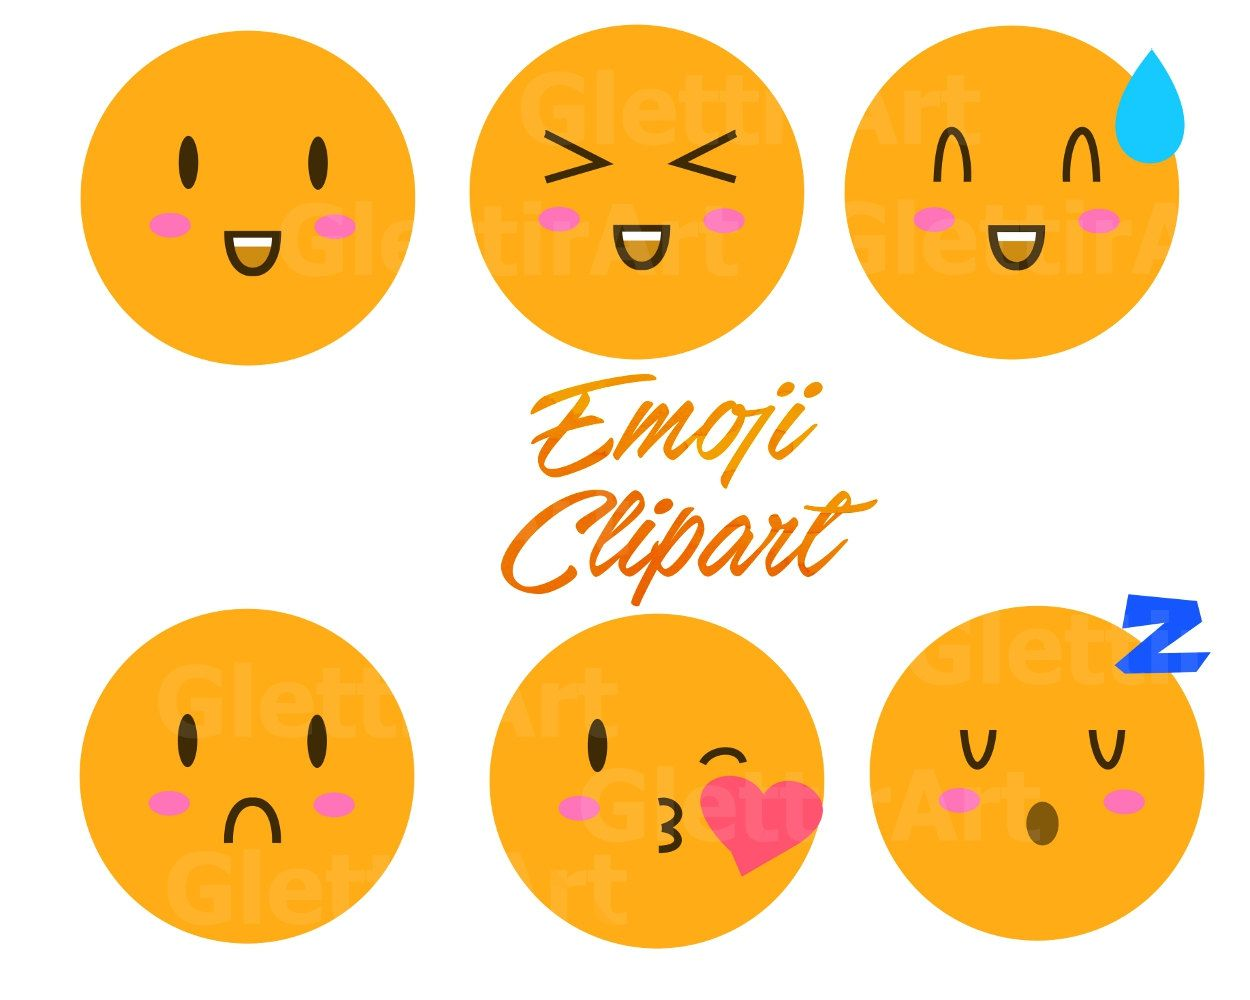 emoji clipart smiley face clipart emoticons clipart for personal and commercial use instant download scrapbooking planner stickers by glettirart on  [ 1250 x 1000 Pixel ]